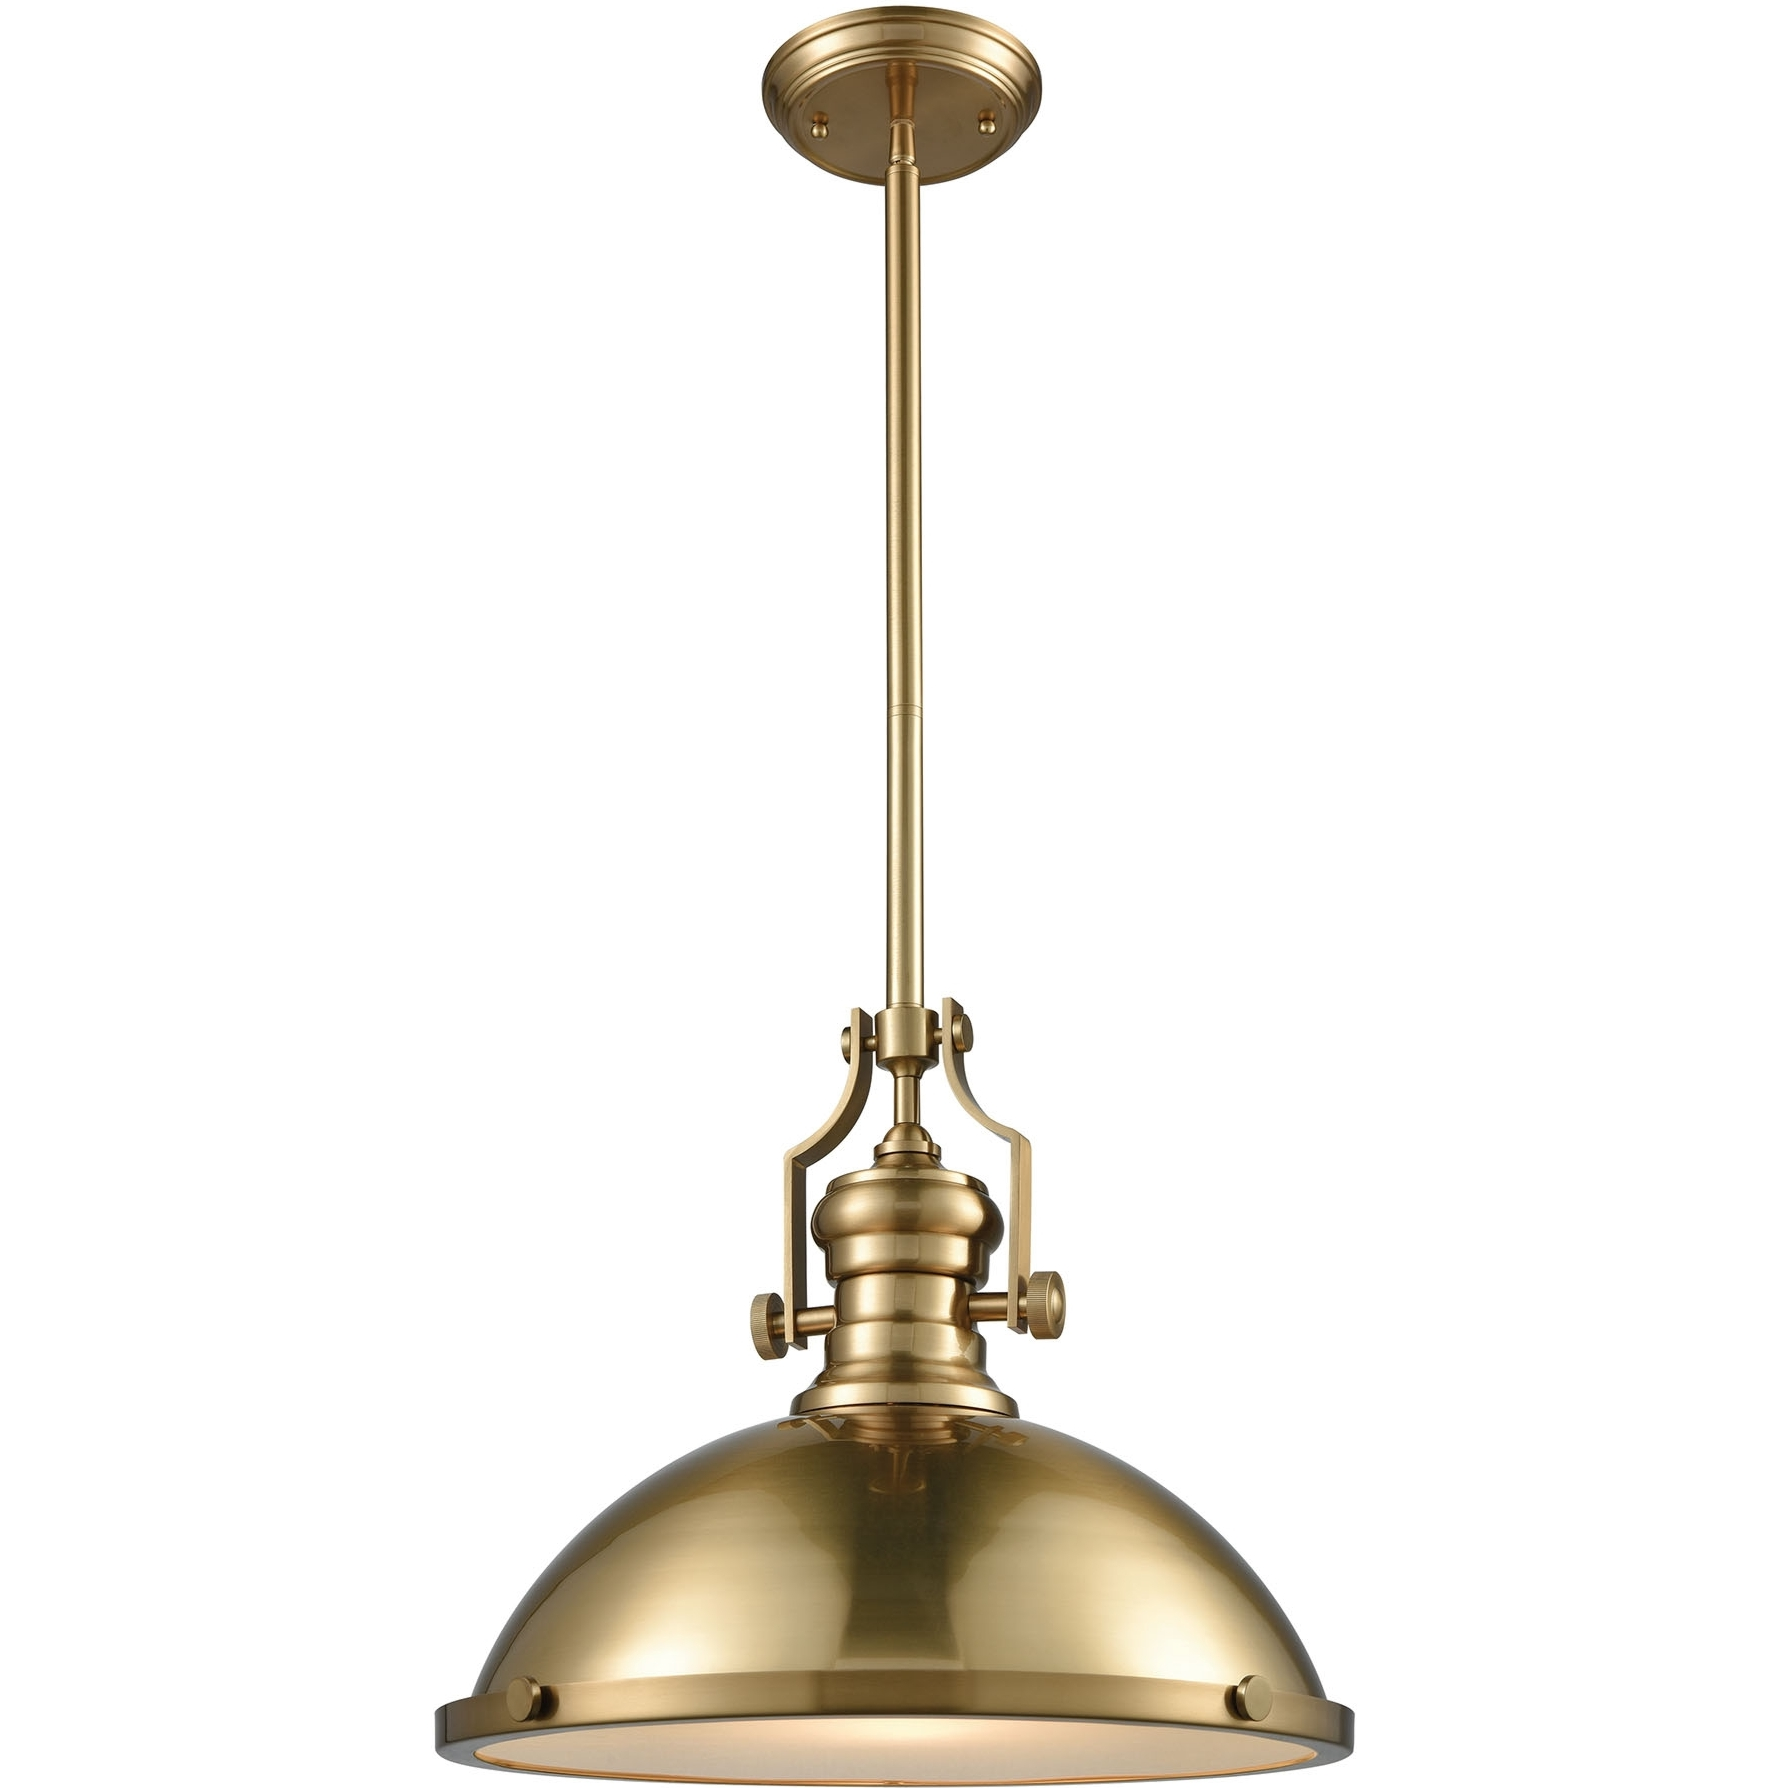 Elk Lighting Chadwick Pendant: ELK Lighting 66598-1 Chadwick 1 Light Ceiling Pendant In